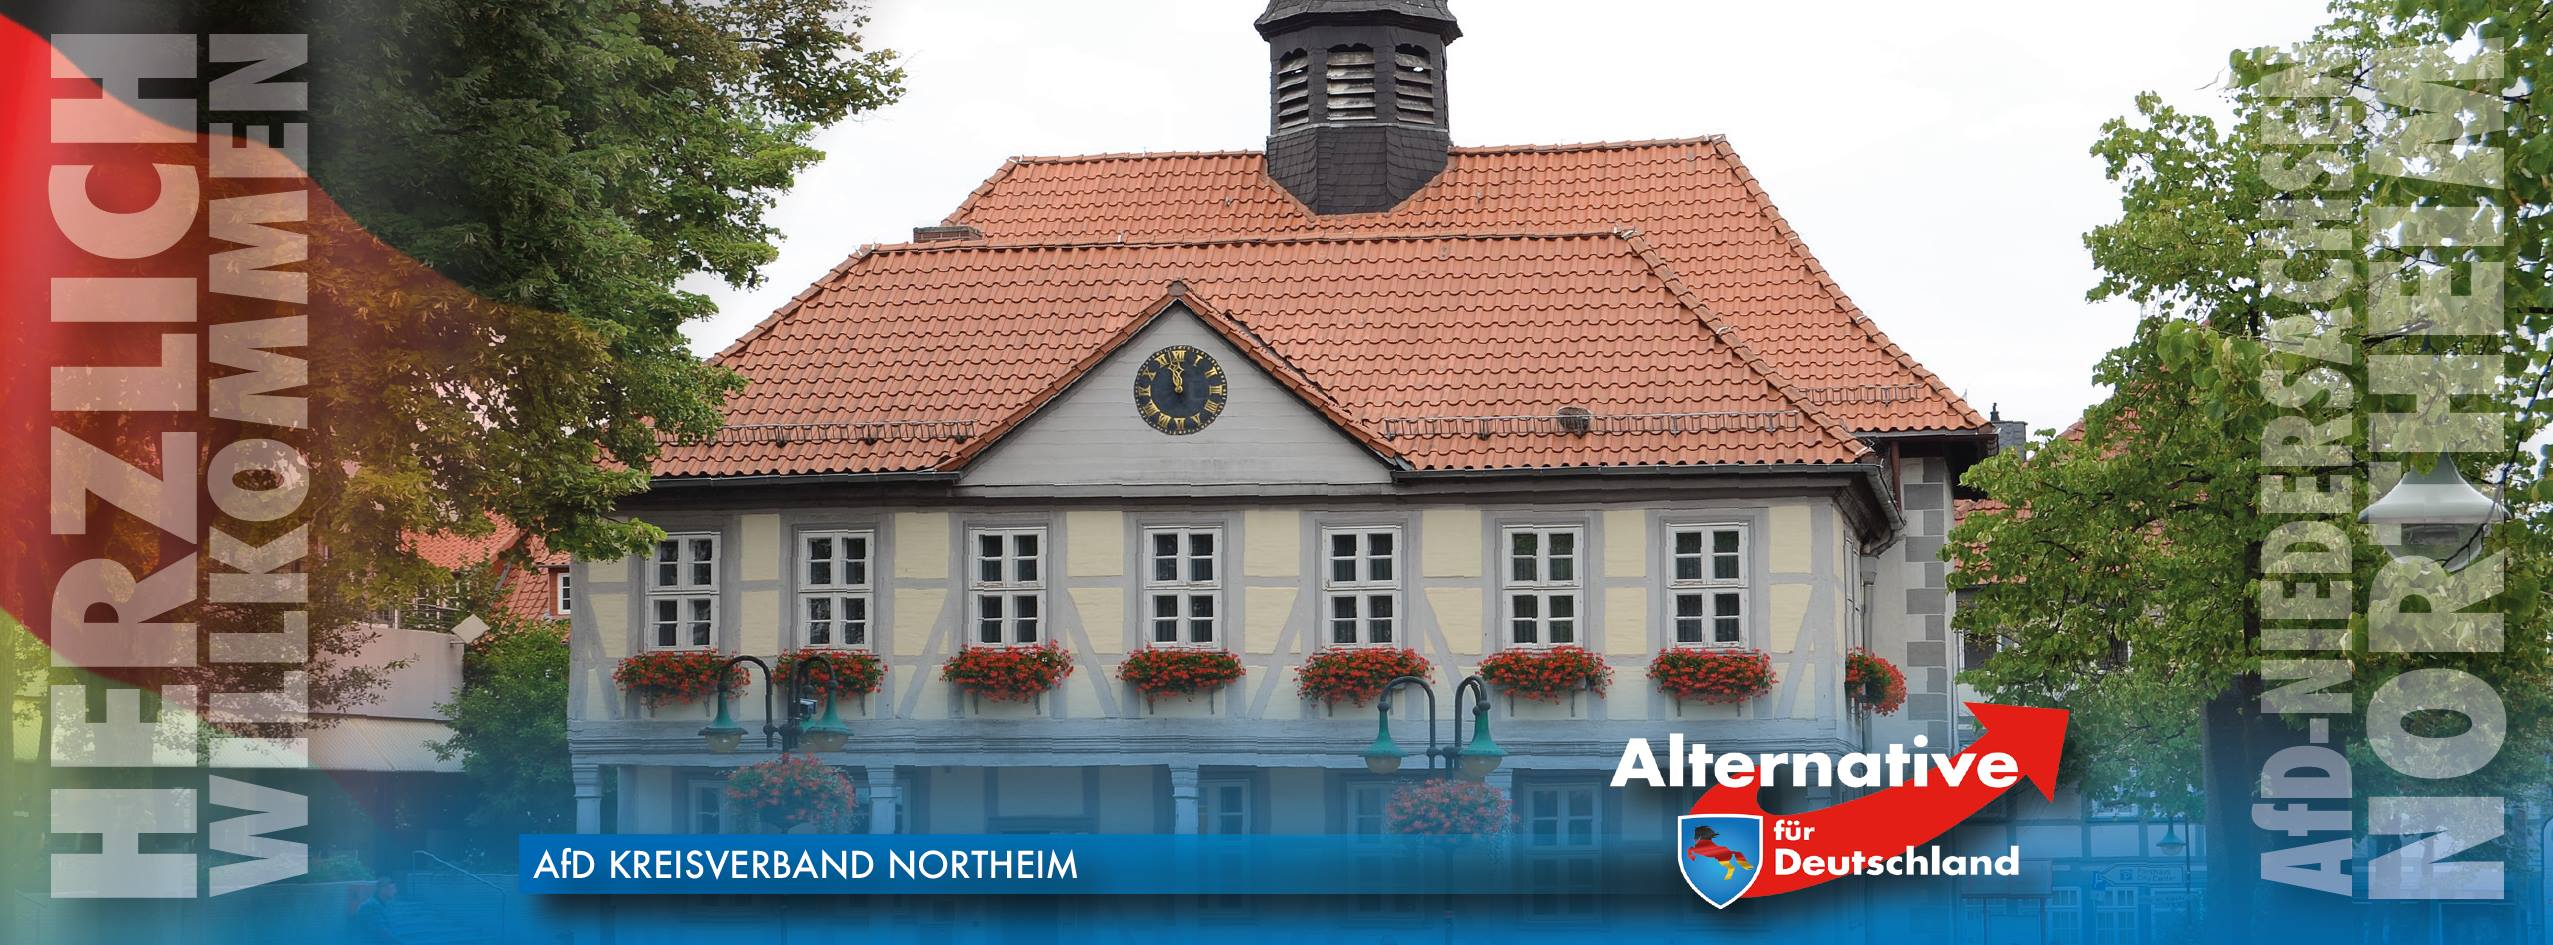 AfD Kreisverband Northeim – Alternative für Deutschland